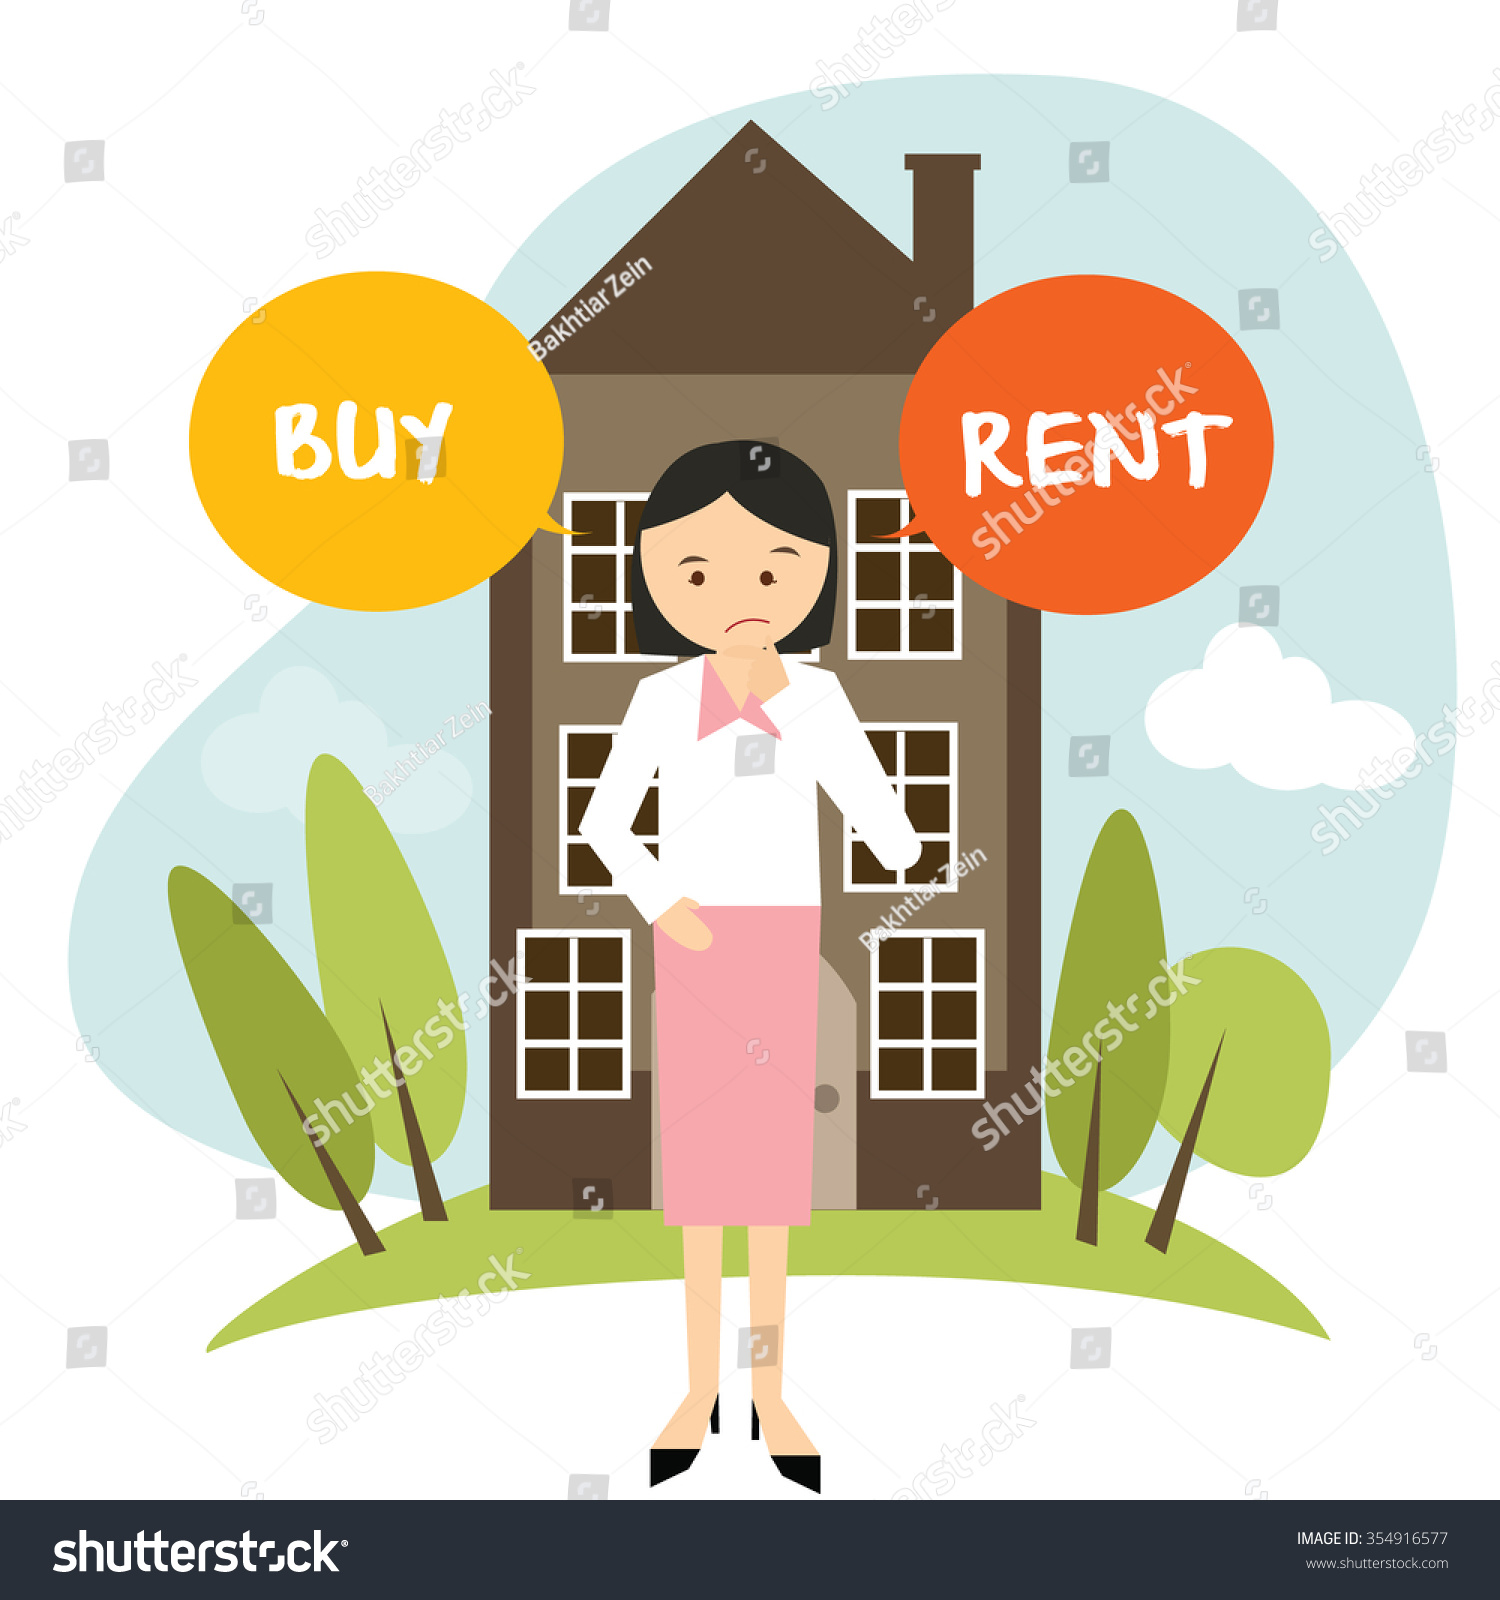 House For Rent Clip Art: Clipart Free Download